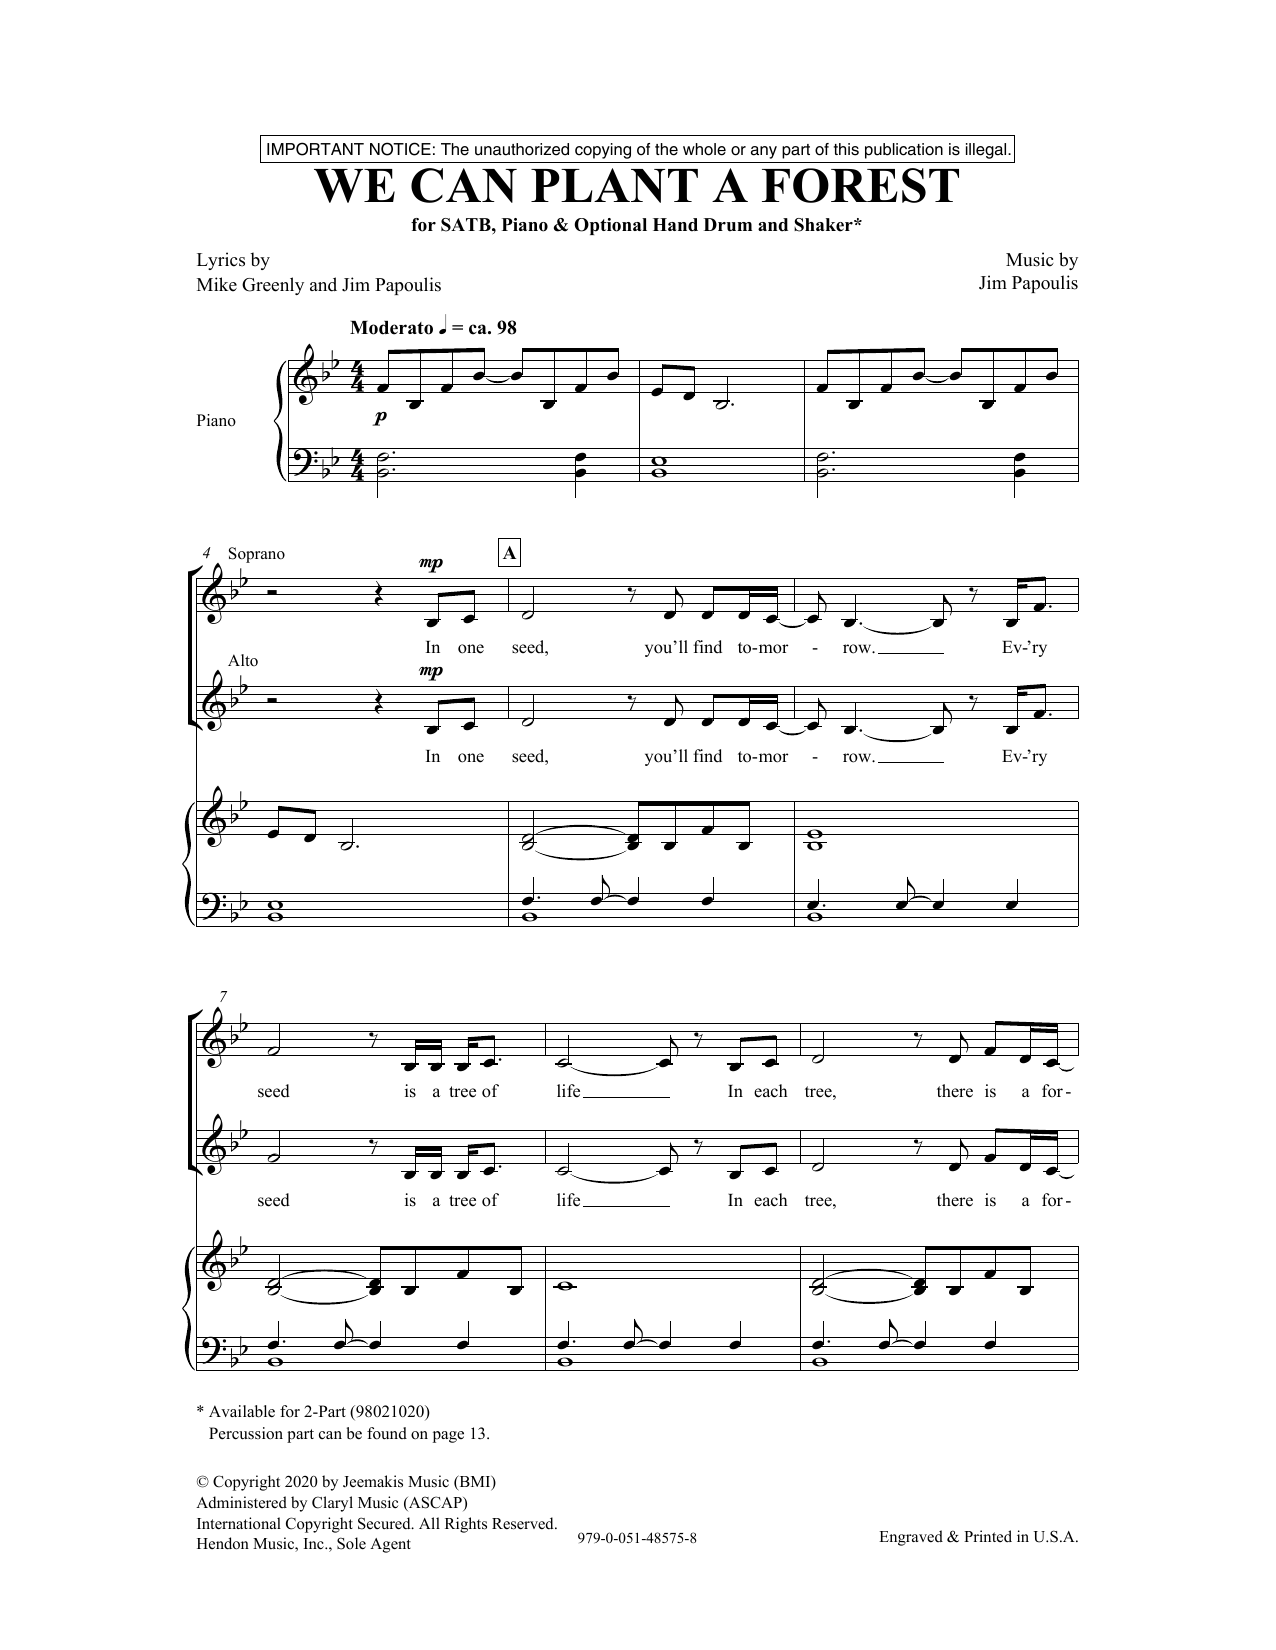 We Can Plant A Forest Sheet Music